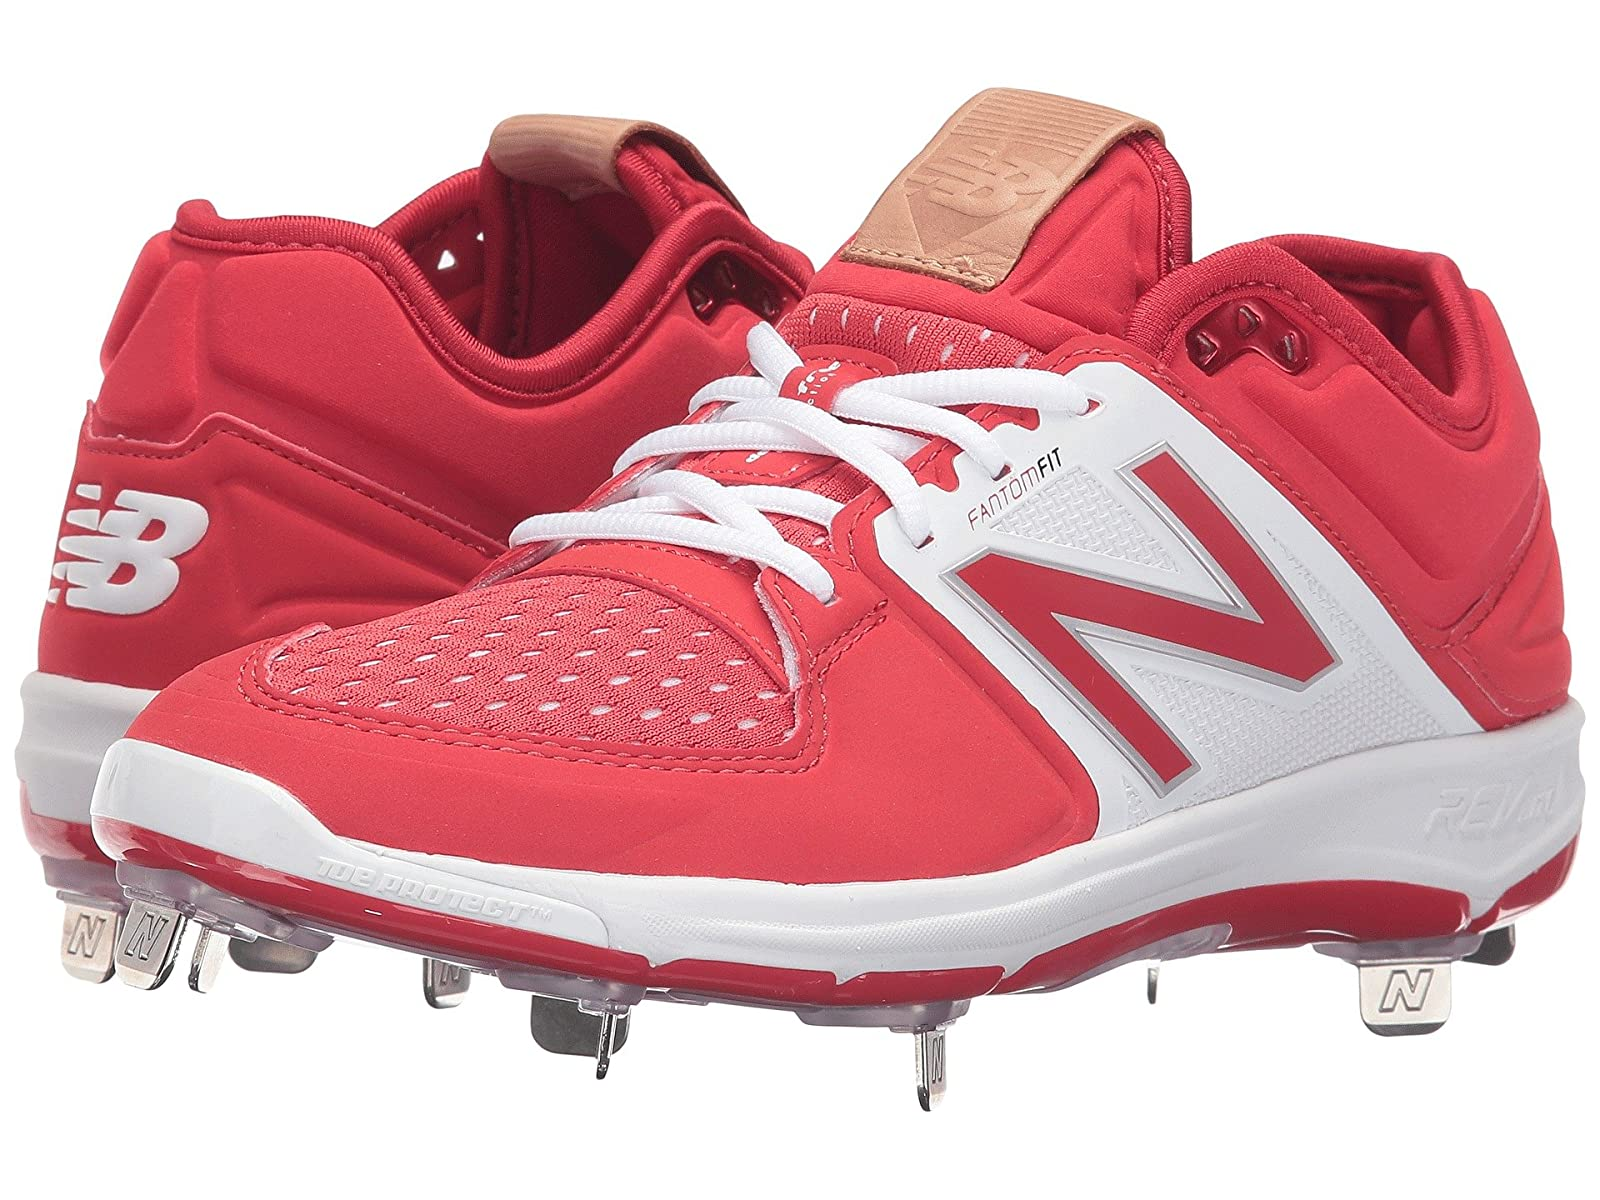 New Balance L3000v3Cheap and distinctive eye-catching shoes